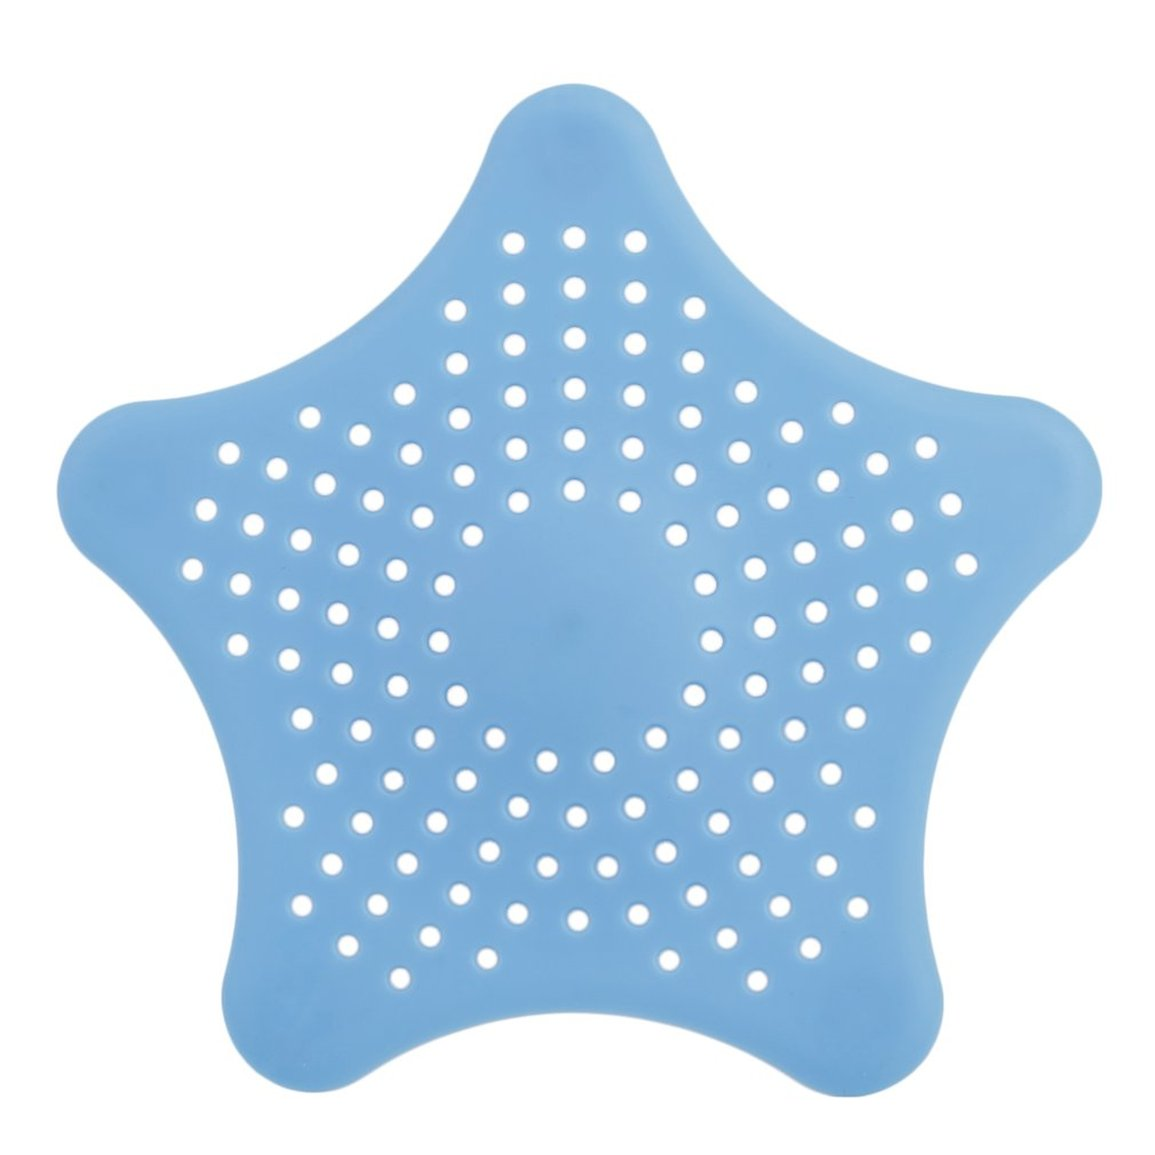 Star Plastic Bath Kitchen Waste Sink Strainer Hair Filter Drain Catcher